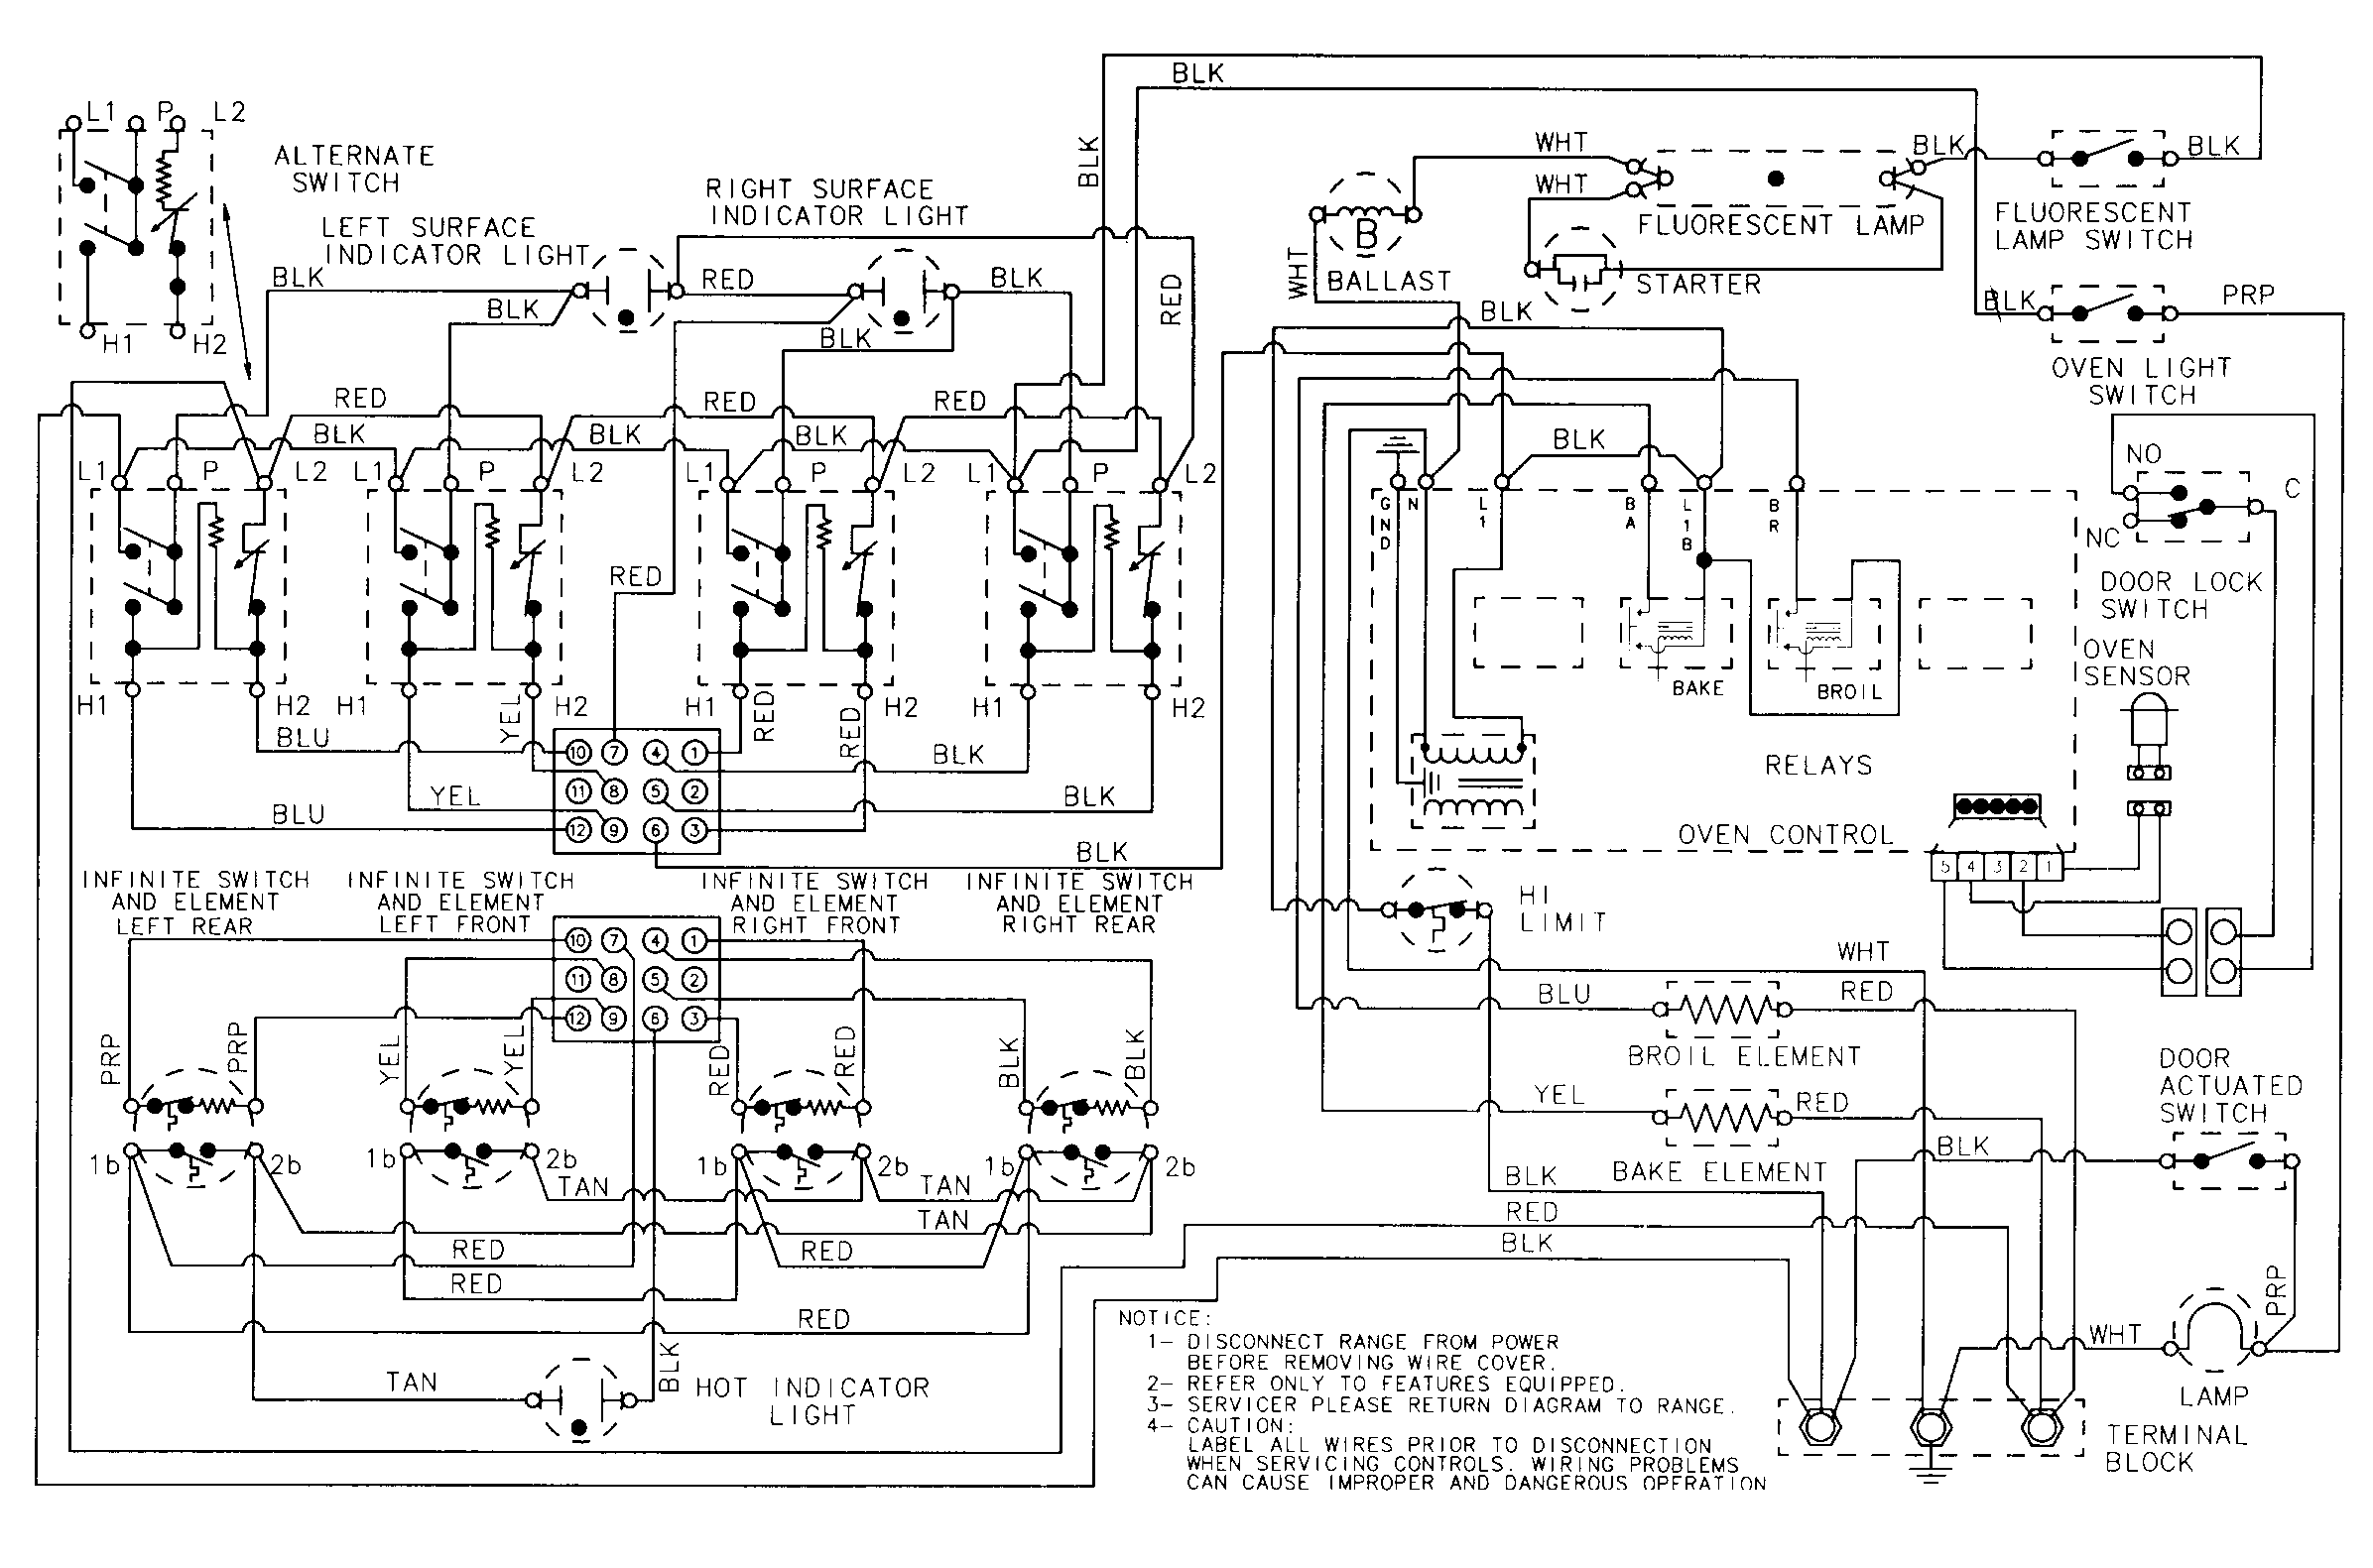 small resolution of dishwasher motor wiring diagram wiring diagram technic unique bosch dishwasher motor wiring diagram diagram